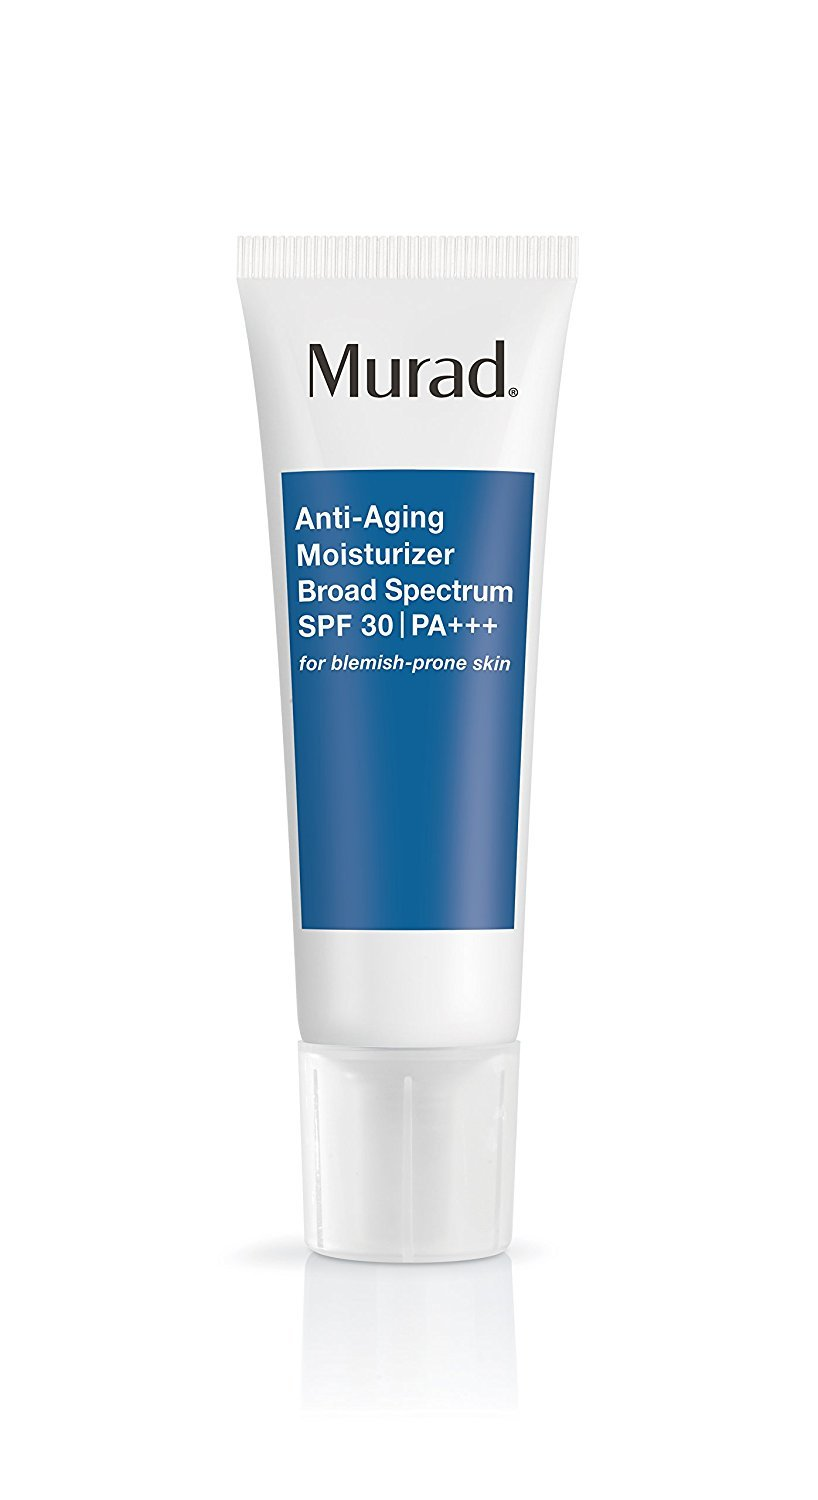 Murad Anti-Aging Acne Moisturizer with Broad Spectrum SPF 30 PA+++ - (1.7 oz), Ultra-Light Fast Absorbing Daily Moisturizer for Acne Prone Skin, Fights the Signs of Aging with Kombucha Defense Fab Products 767332107967